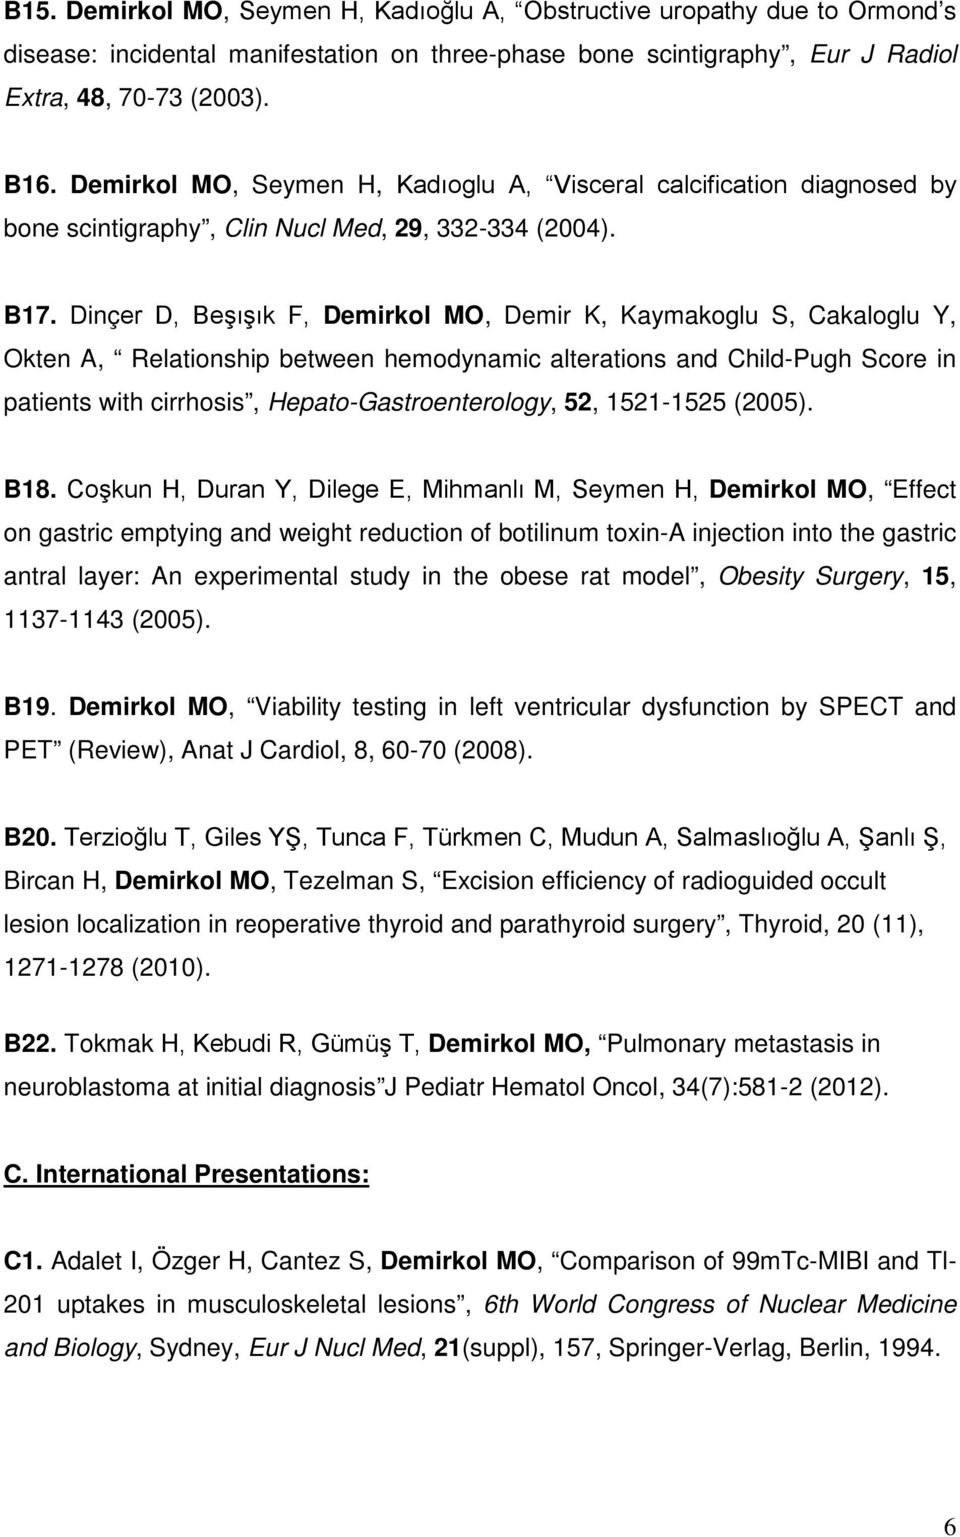 Dinçer D, Beşışık F, Demirkol MO, Demir K, Kaymakoglu S, Cakaloglu Y, Okten A, Relationship between hemodynamic alterations and Child-Pugh Score in patients with cirrhosis, Hepato-Gastroenterology,